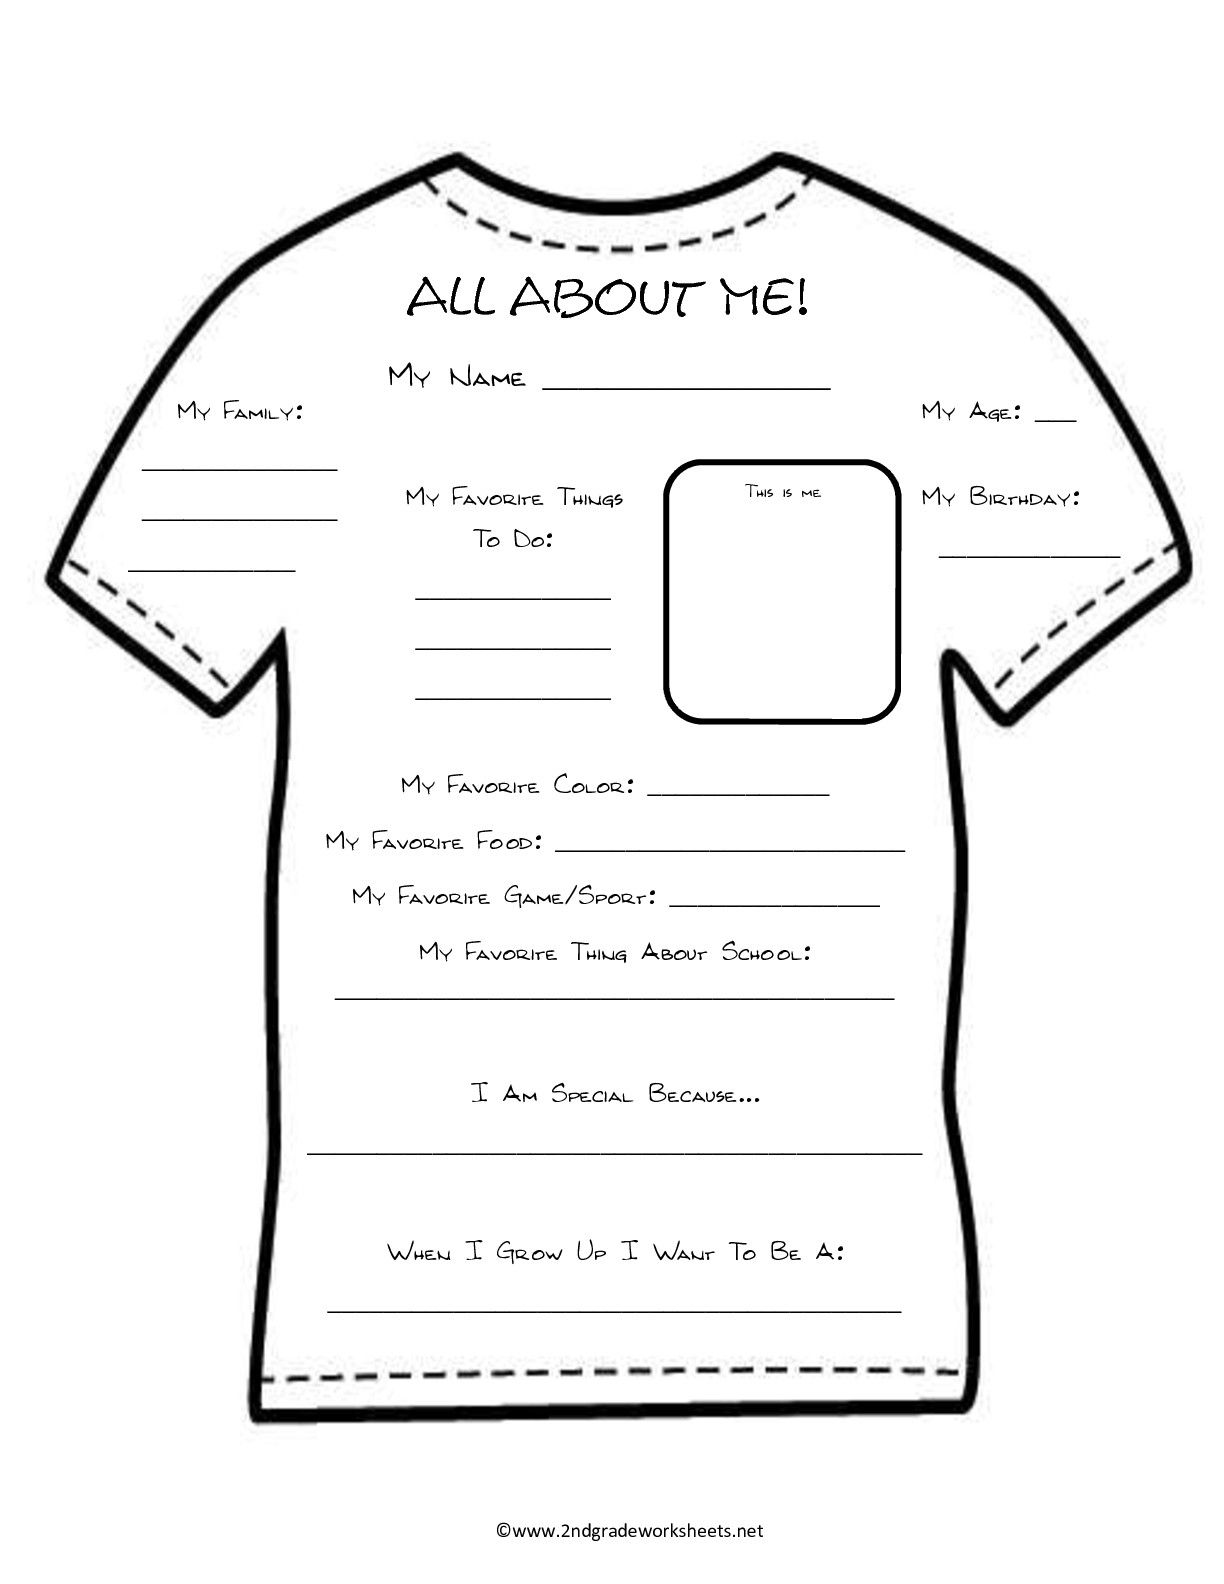 Worksheets All About Me Printable Worksheet all about me template worksheet ms lees beginning of school k 6 best images printable printables worksheets free and preschool